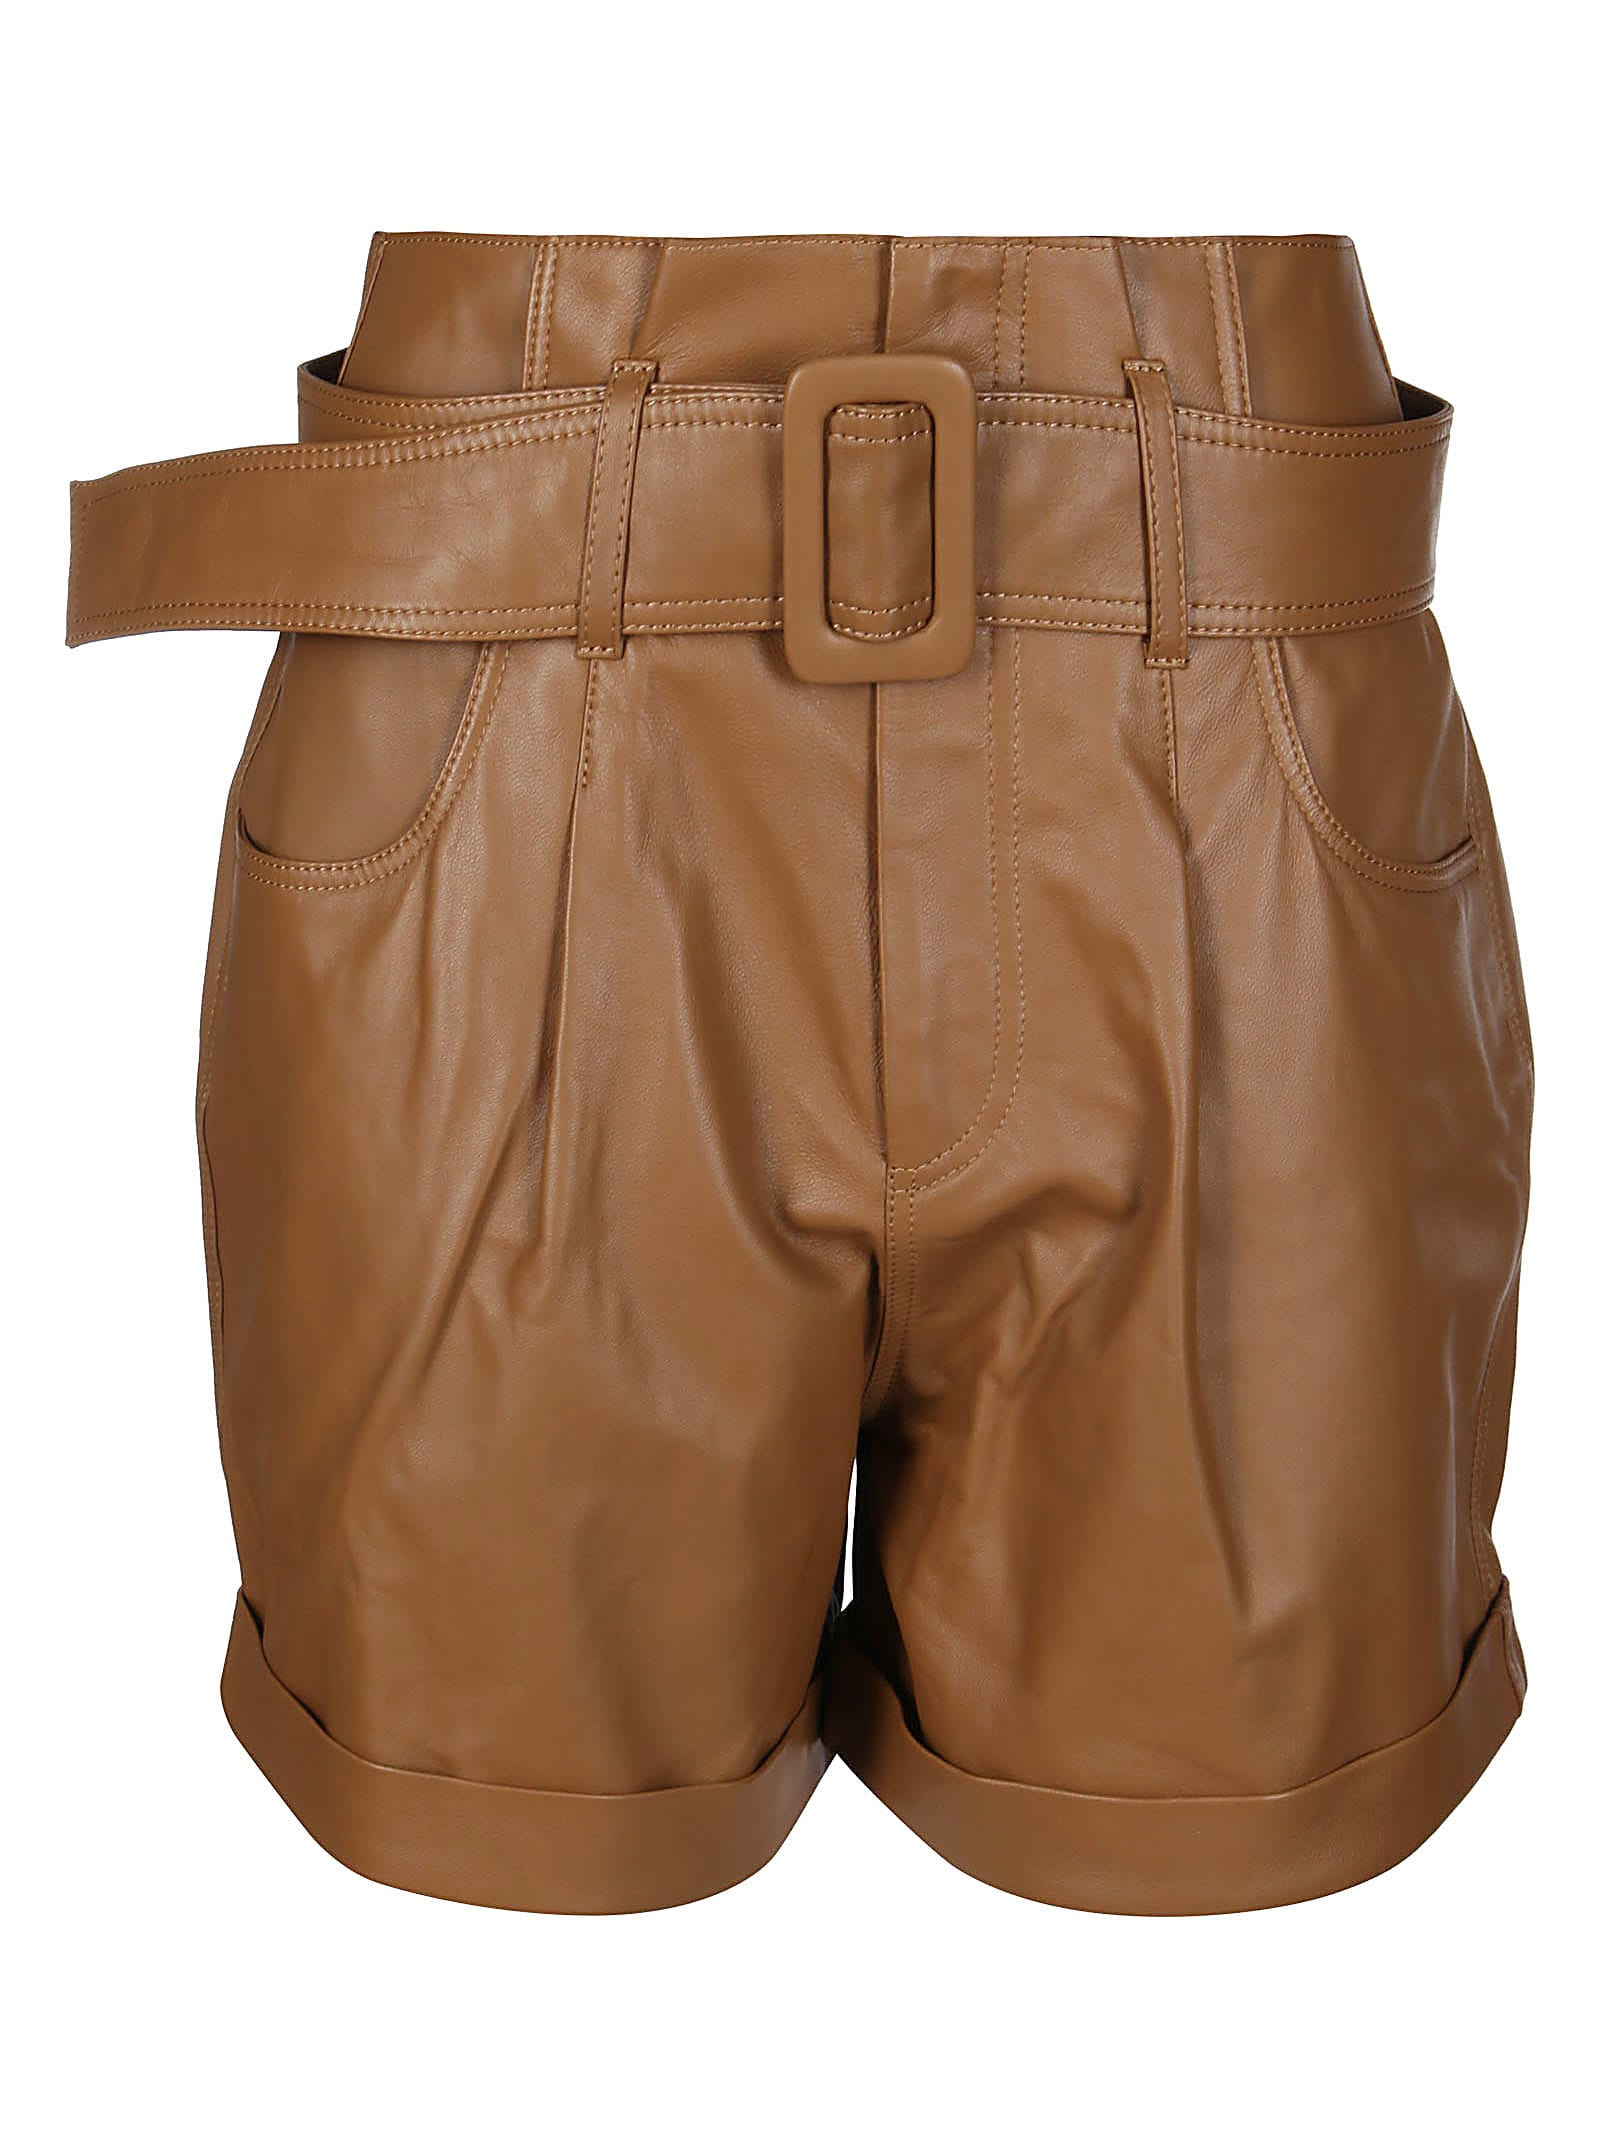 Federica Tosi Clothing SHORTS IN PELLE MARRONE